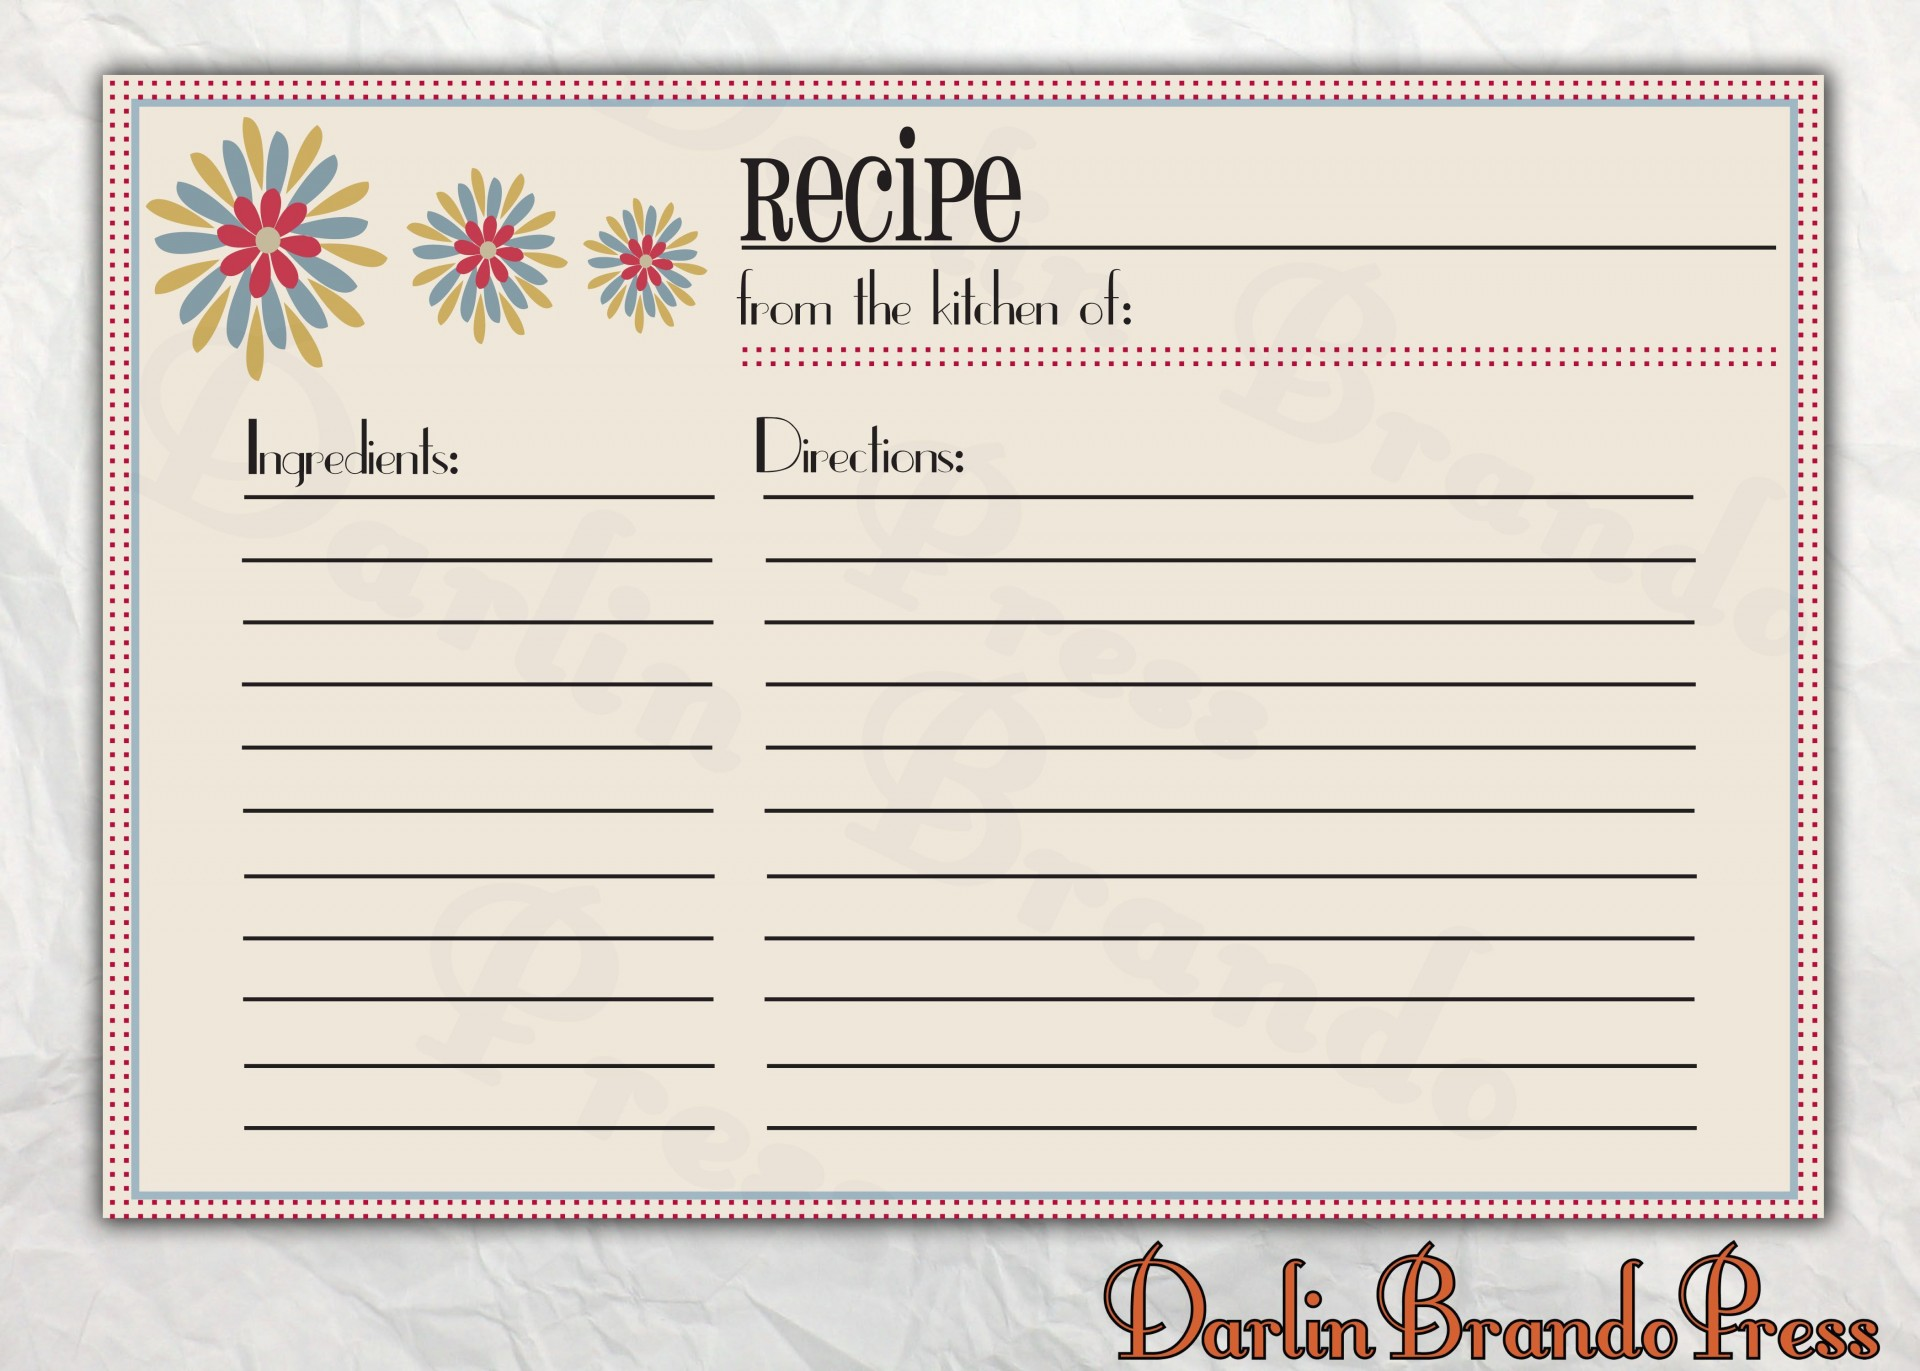 006 Astounding 4 X 6 Recipe Card Template Microsoft Word Inspiration 1920